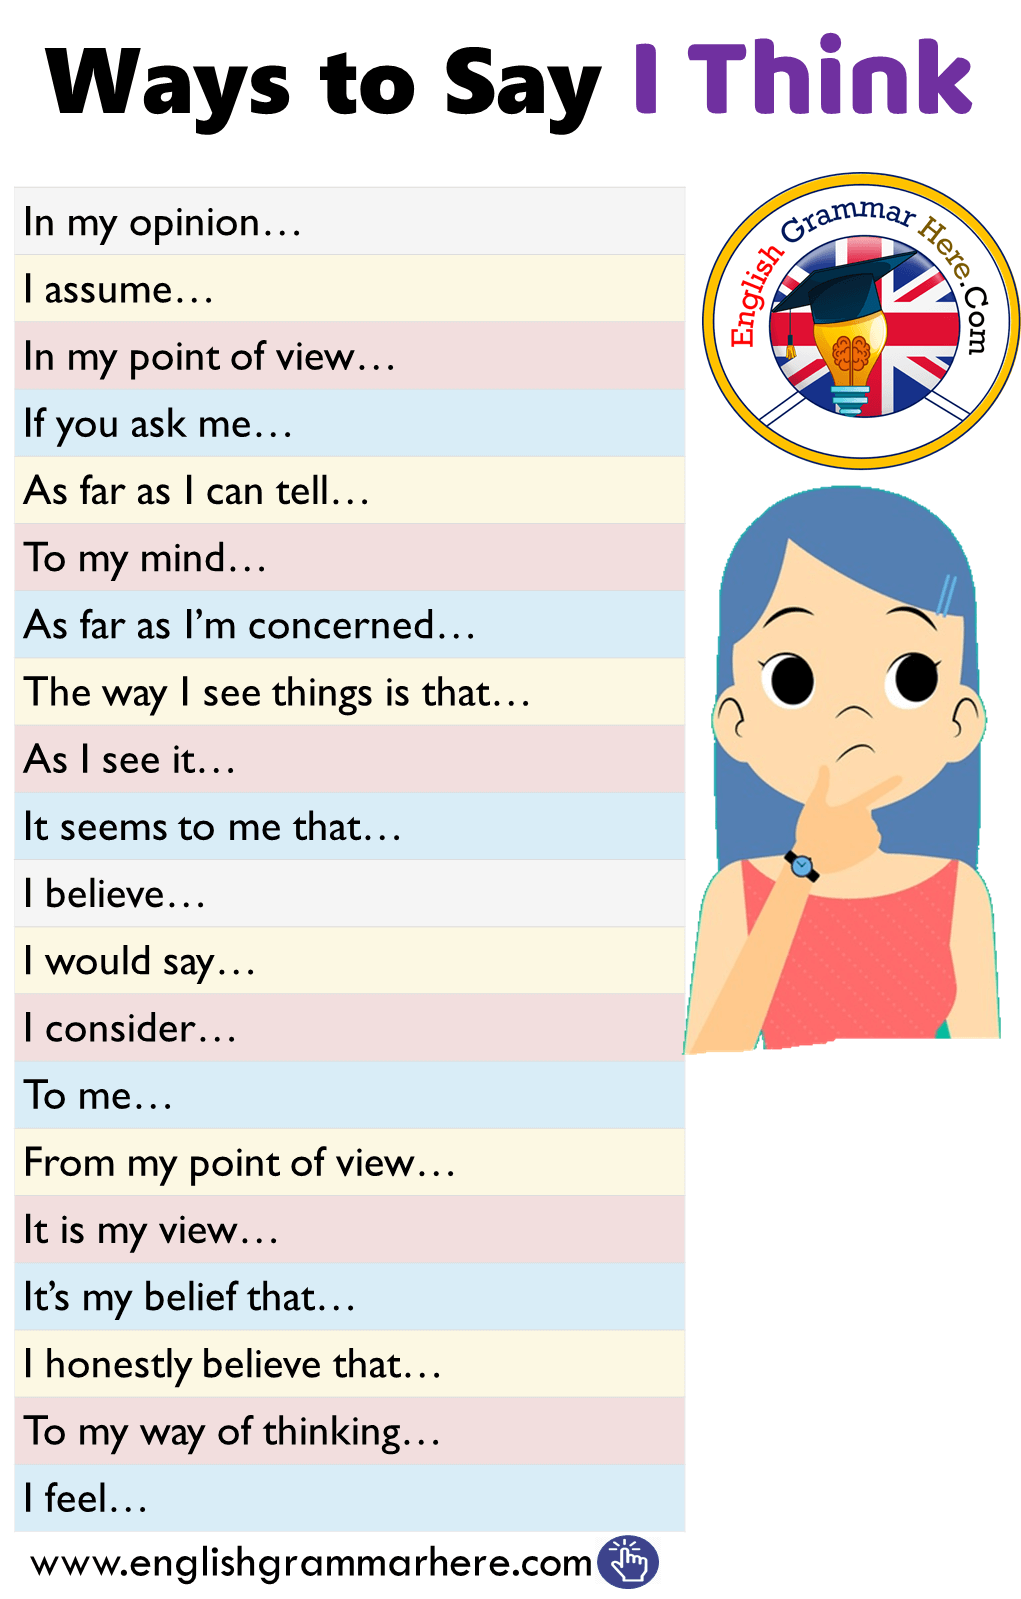 English Ways to Say I Think - English Grammar Here